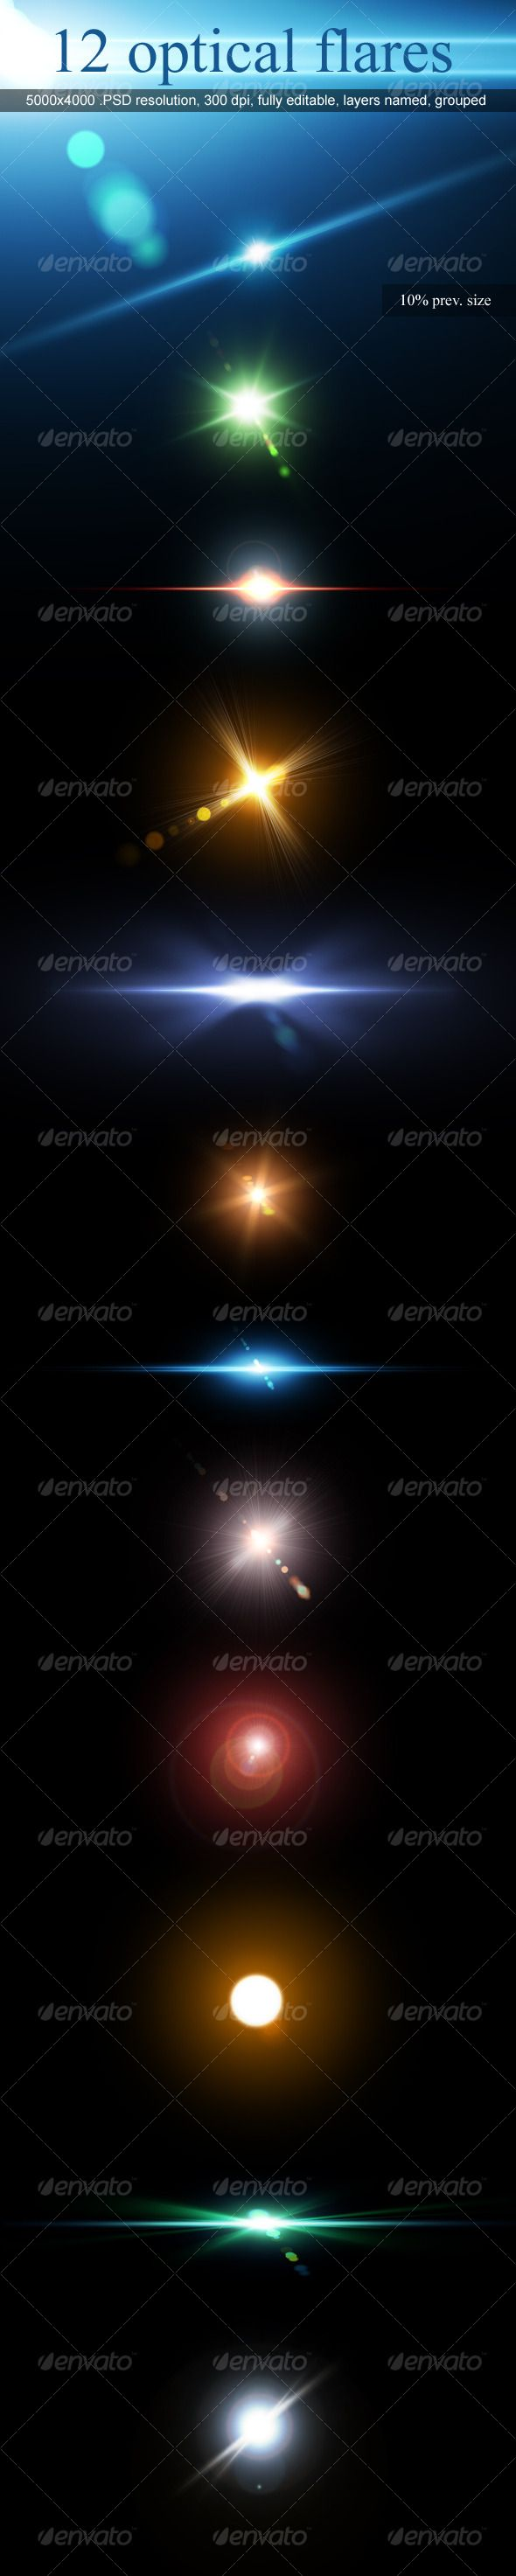 12 Optical Flares by M3-f-web on DeviantArt